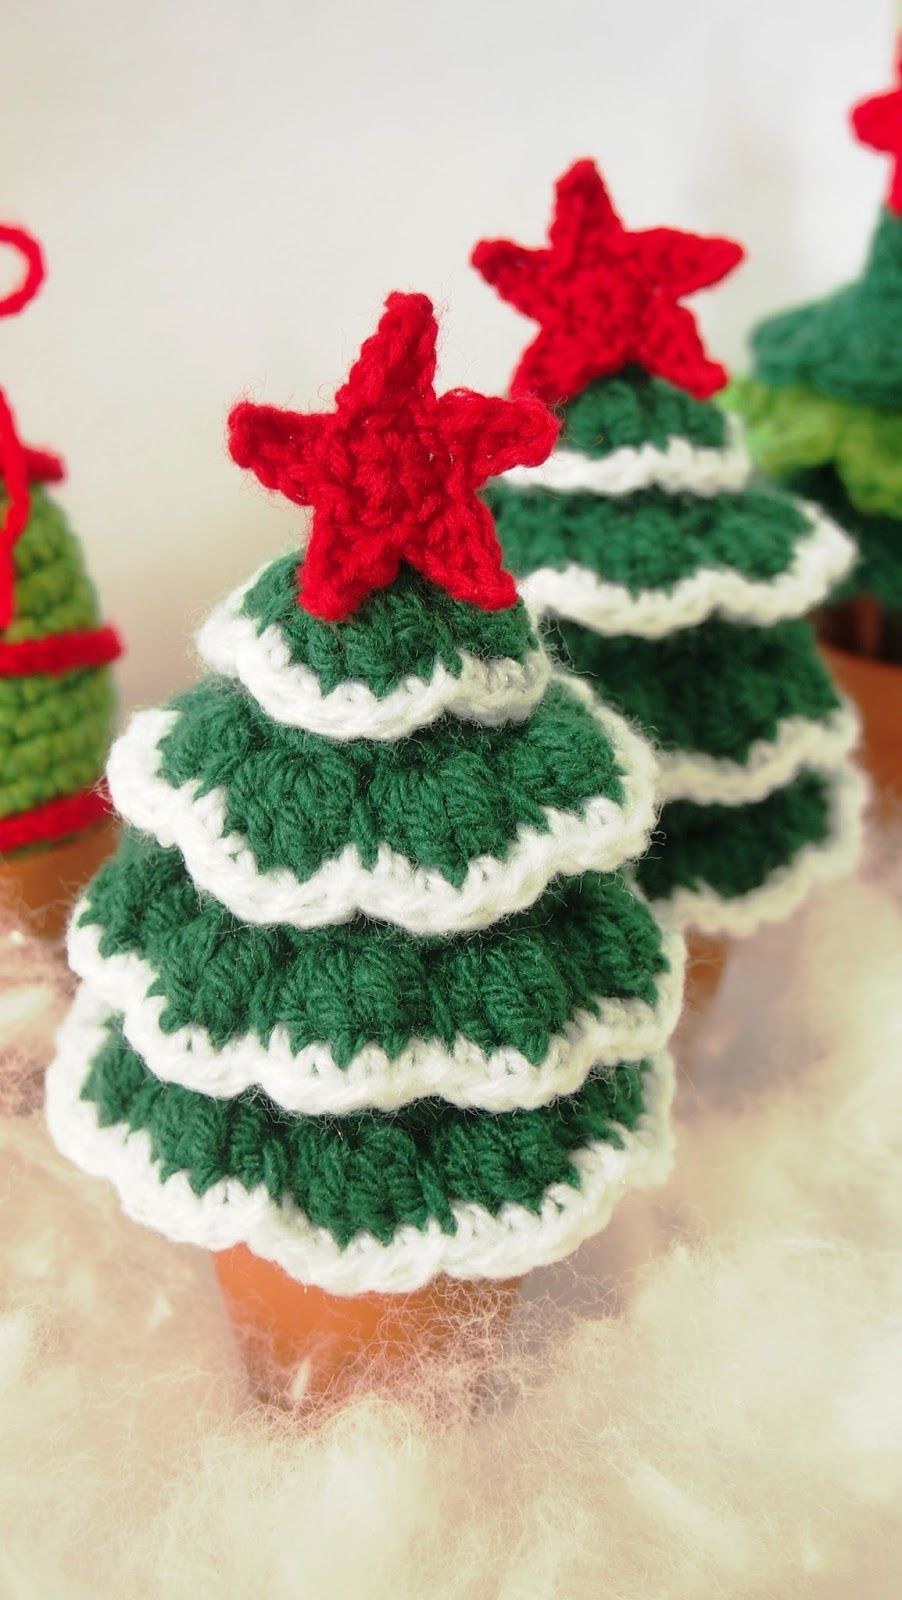 Sol de noche deco crochet flocked christmas tree free pattern sol de noche deco crochet flocked christmas tree free pattern and tutorial bankloansurffo Choice Image